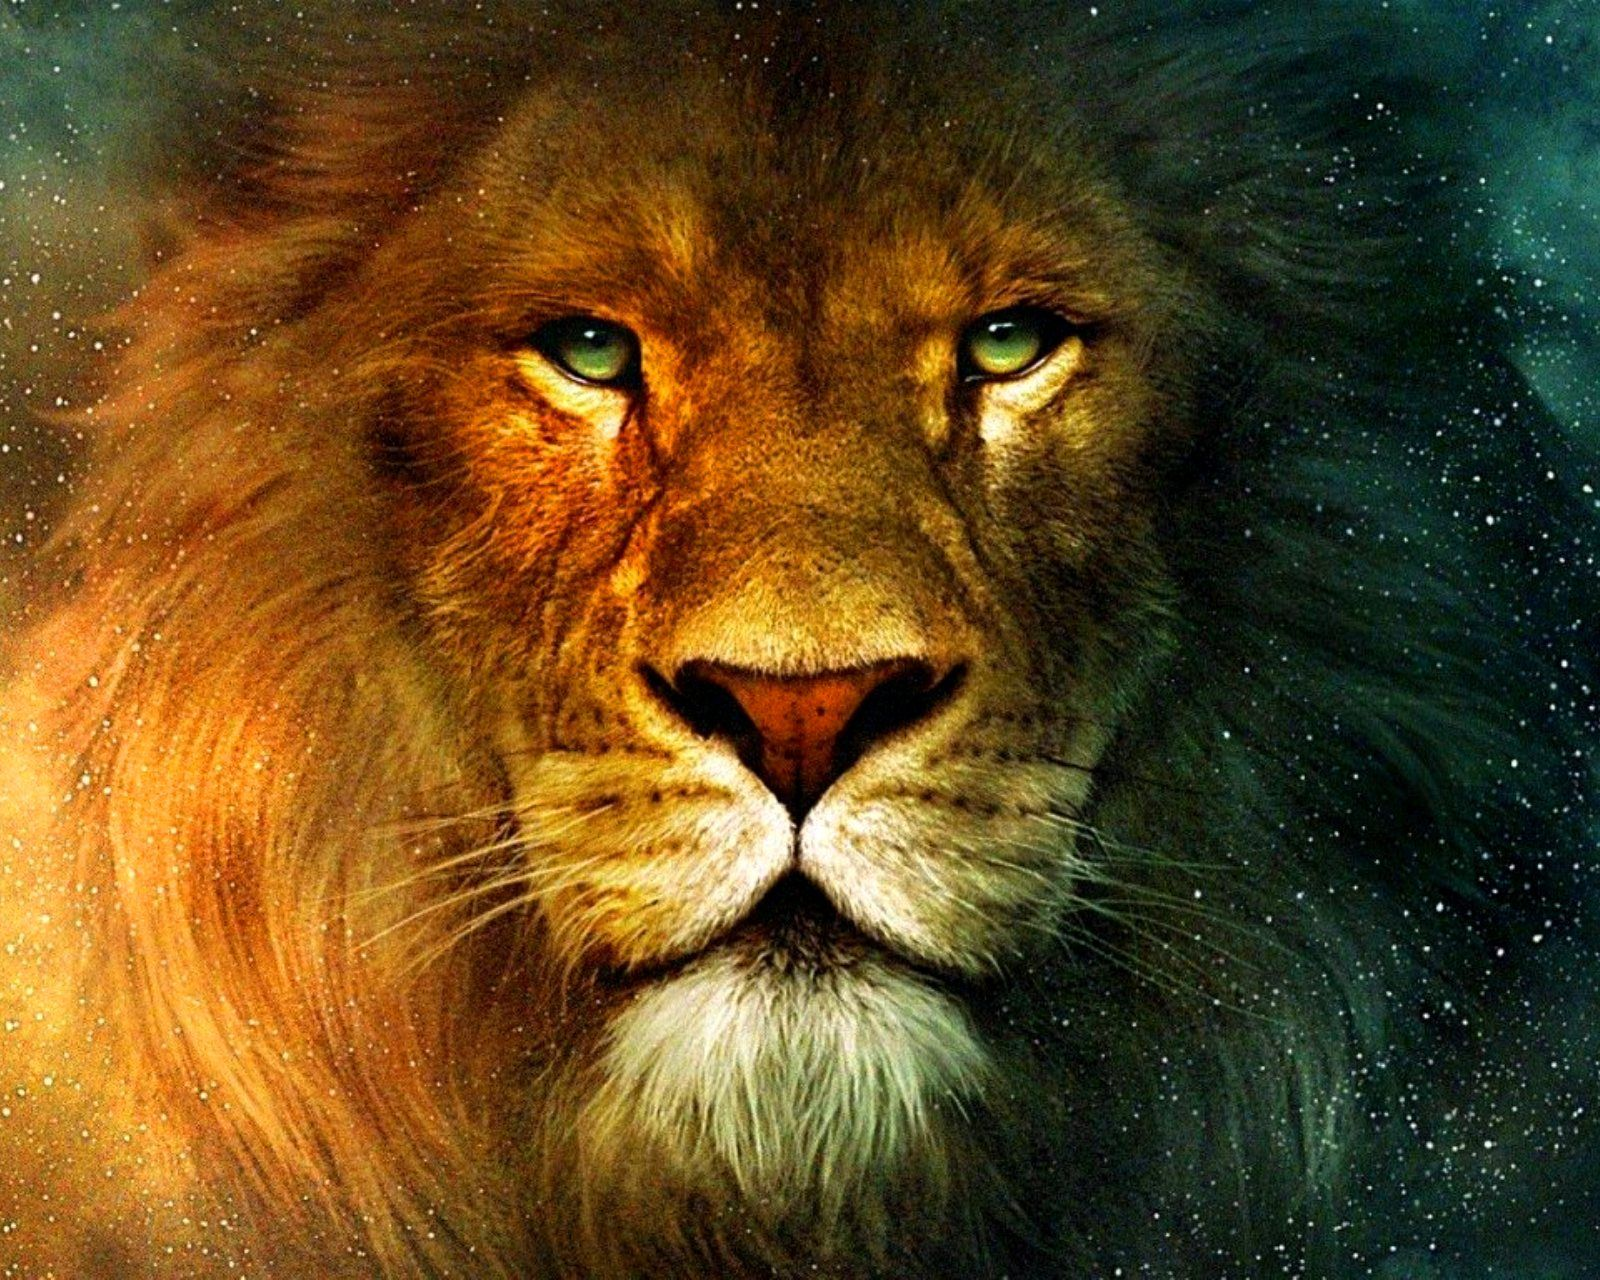 Pictures Of Aslan The Lion Aslan Lion 1600x1280 Free Screensaver